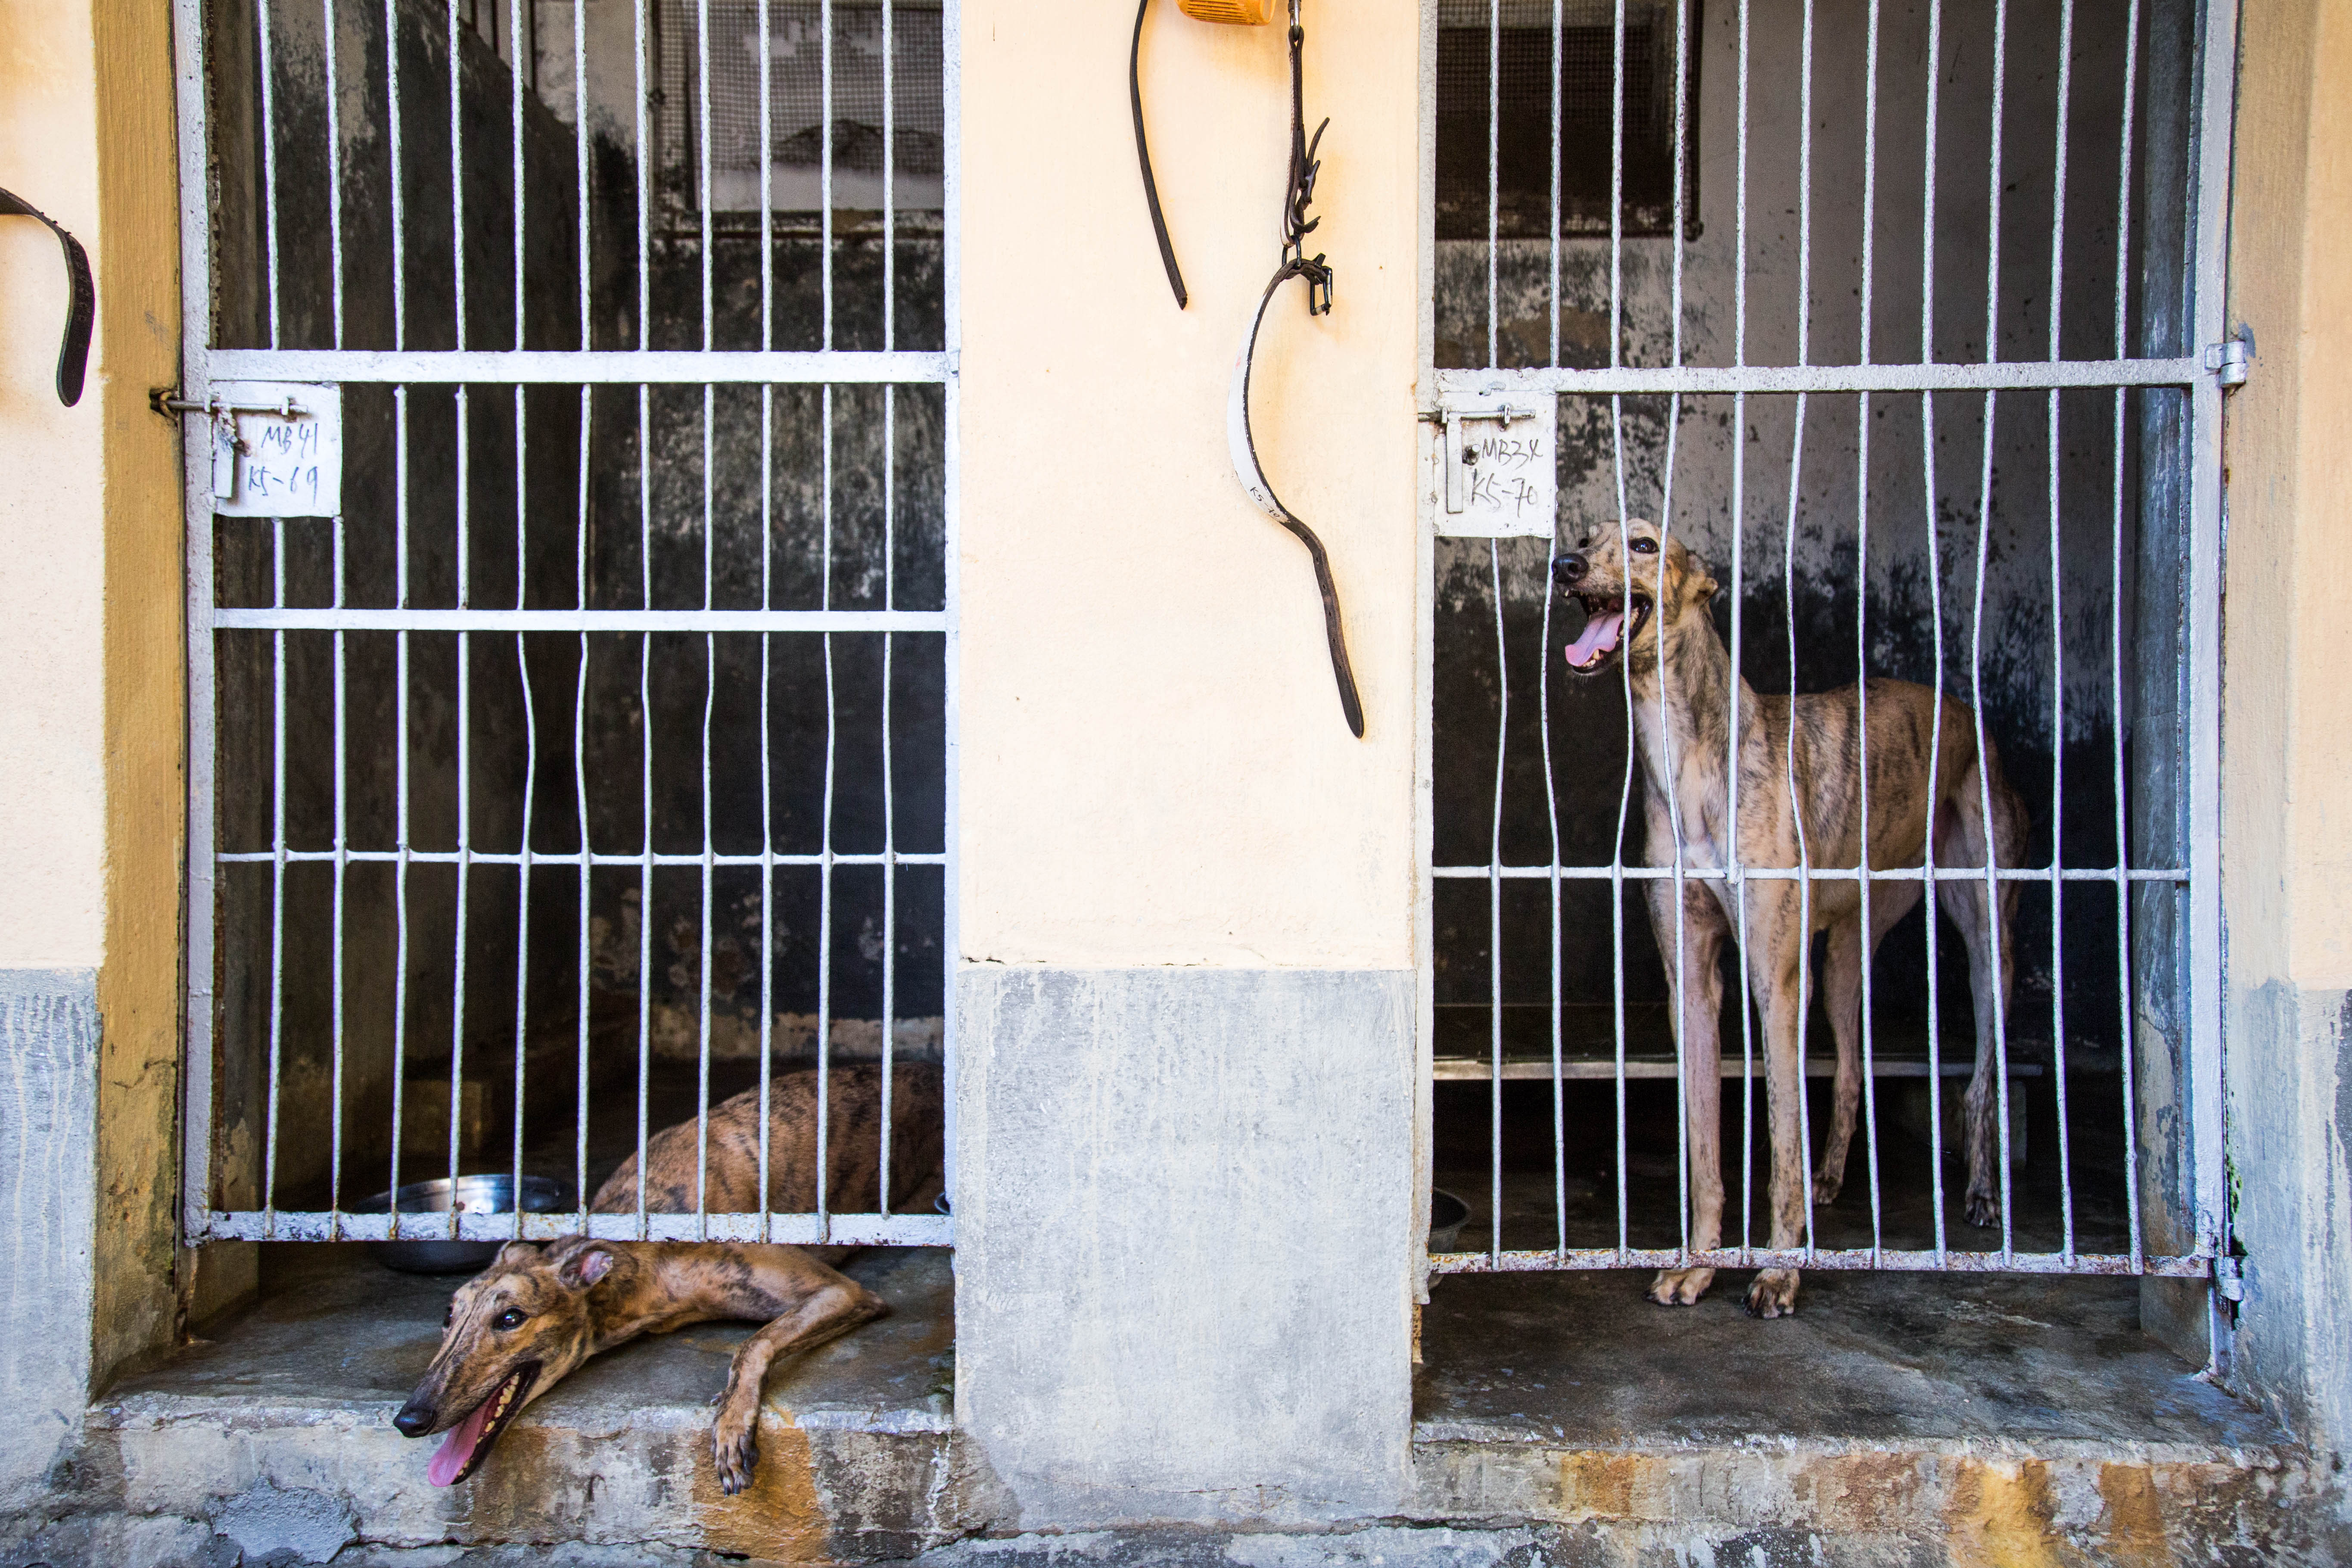 A greyhound kept in Canidrome's kennels in Macau, July 26, 2018.